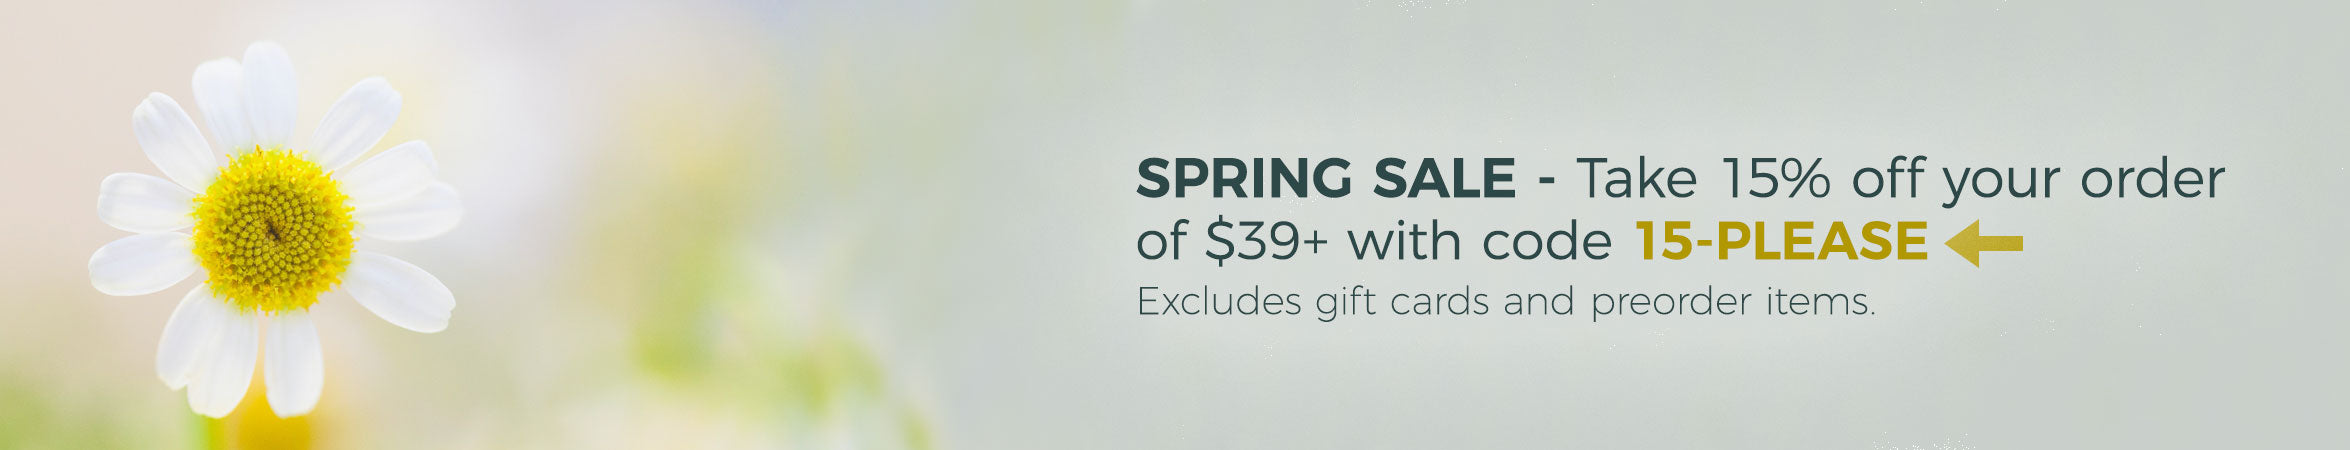 Spring Sale - 15% off orders $39+ (excludes preorder and gift cards)